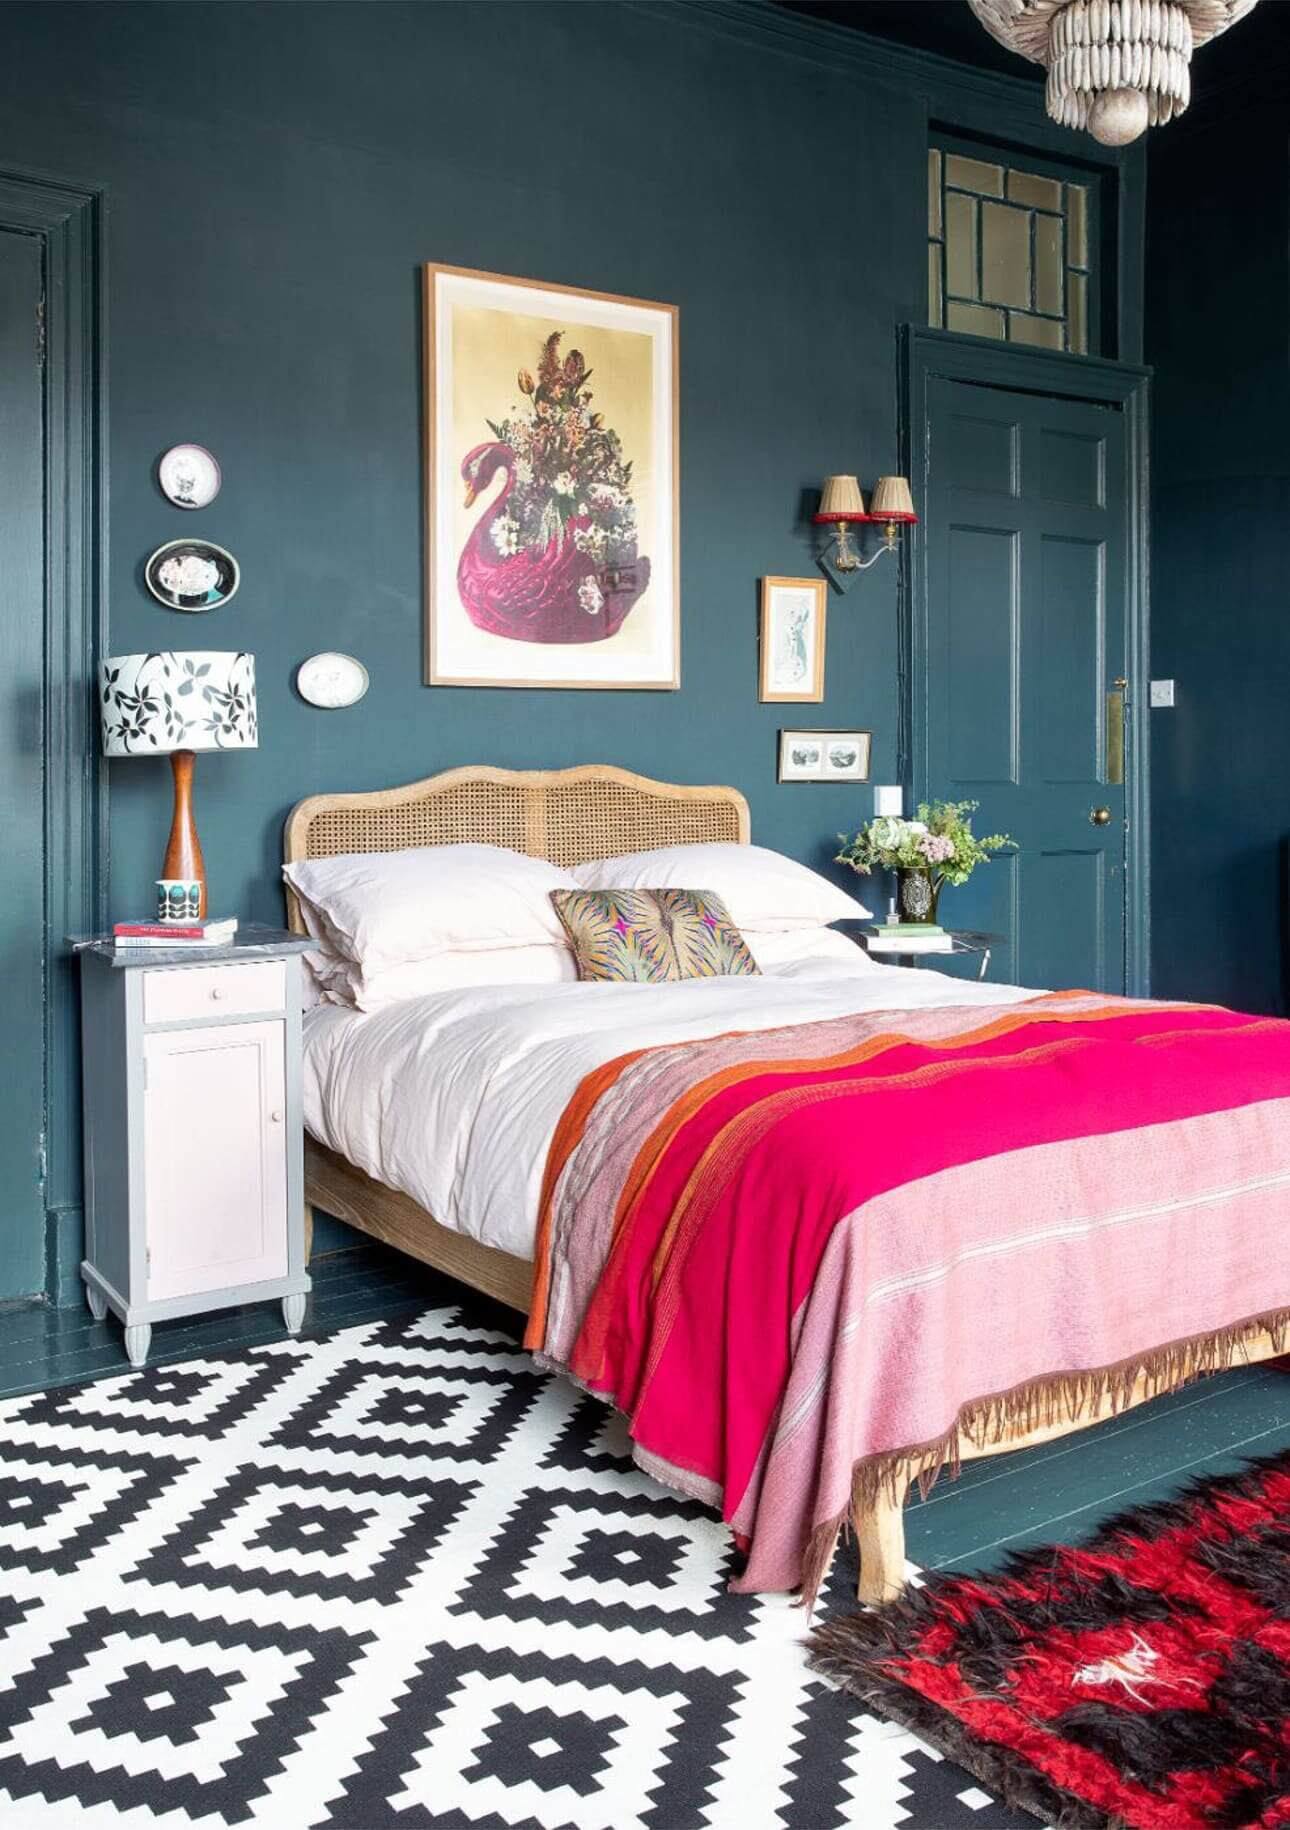 Moody Hues with Bright Color Pops in an Edinburgh Home